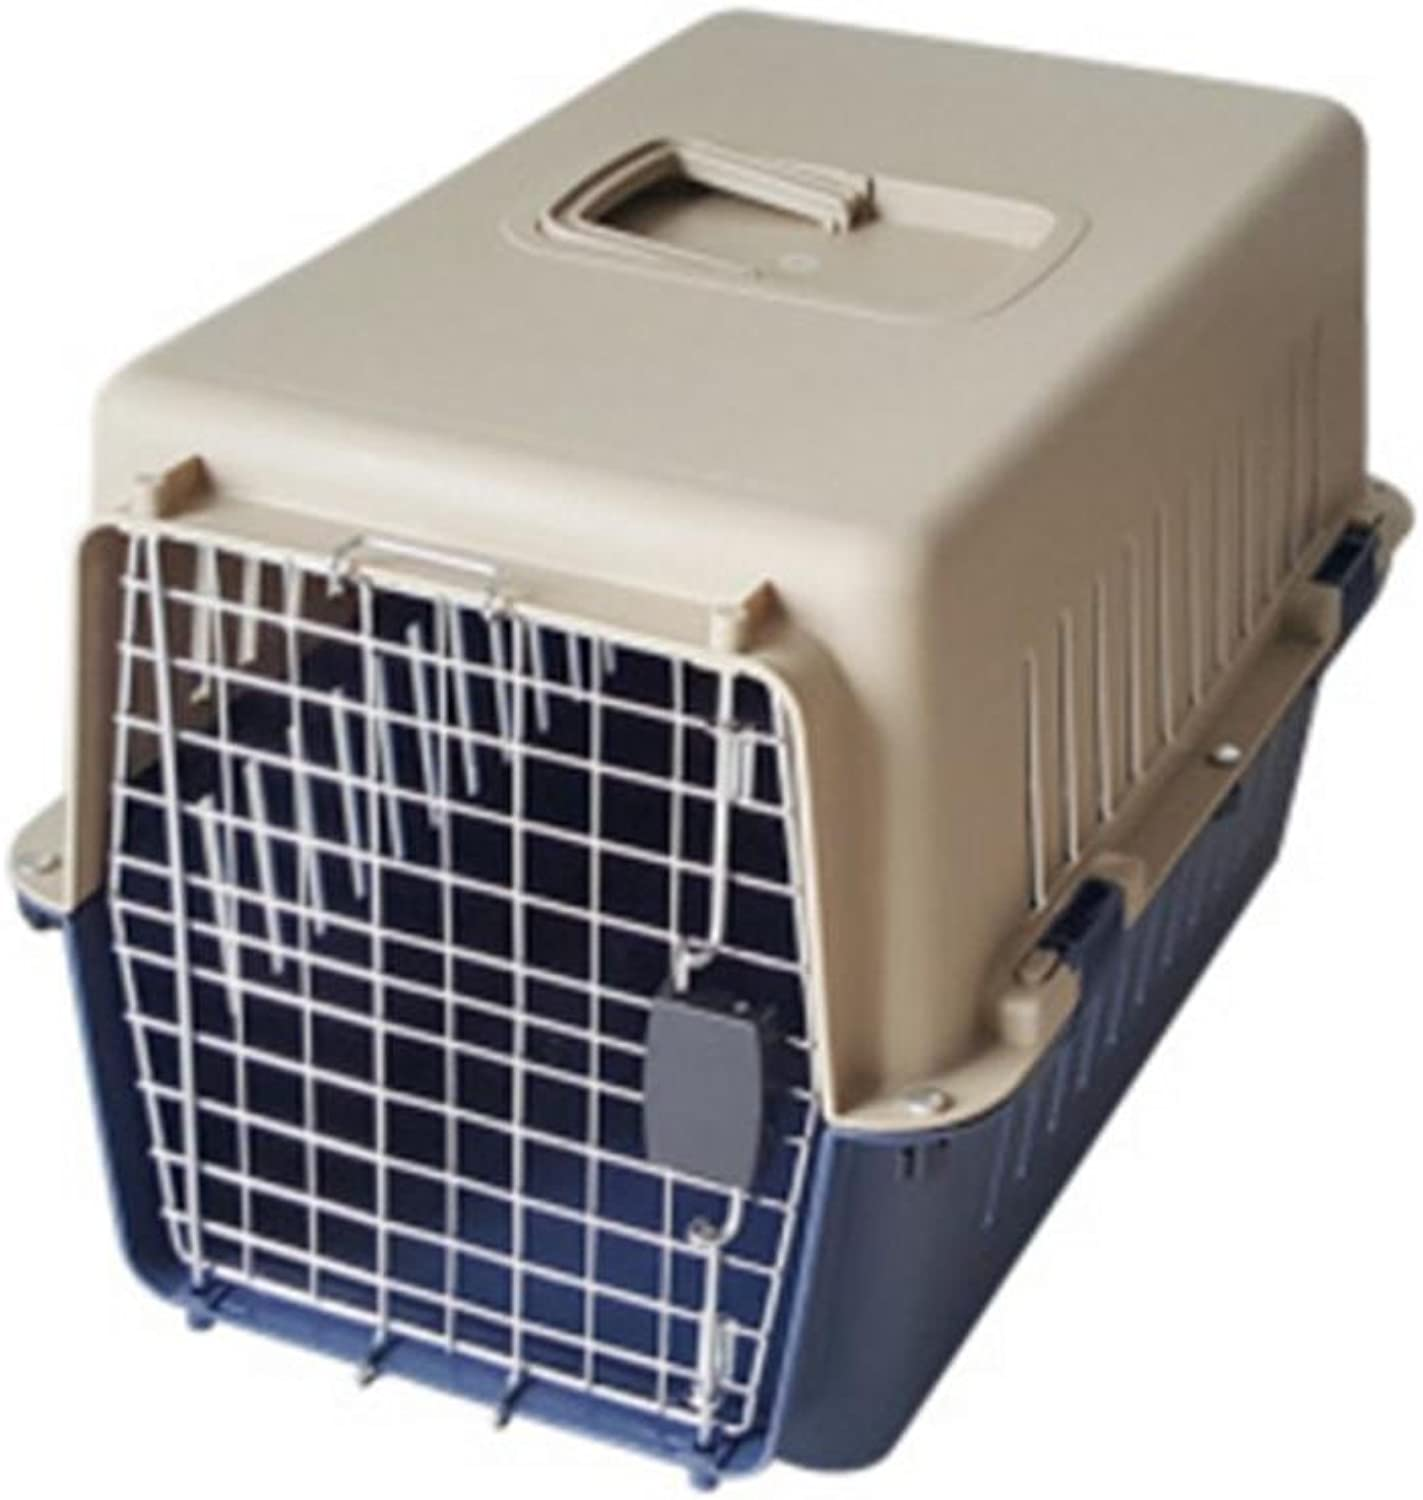 OOFWY Pet Box   Cat And Dog Dedicated Aviation Box   Portable Travel Box  Pet Nest   Quality PVC Resin Material , D2